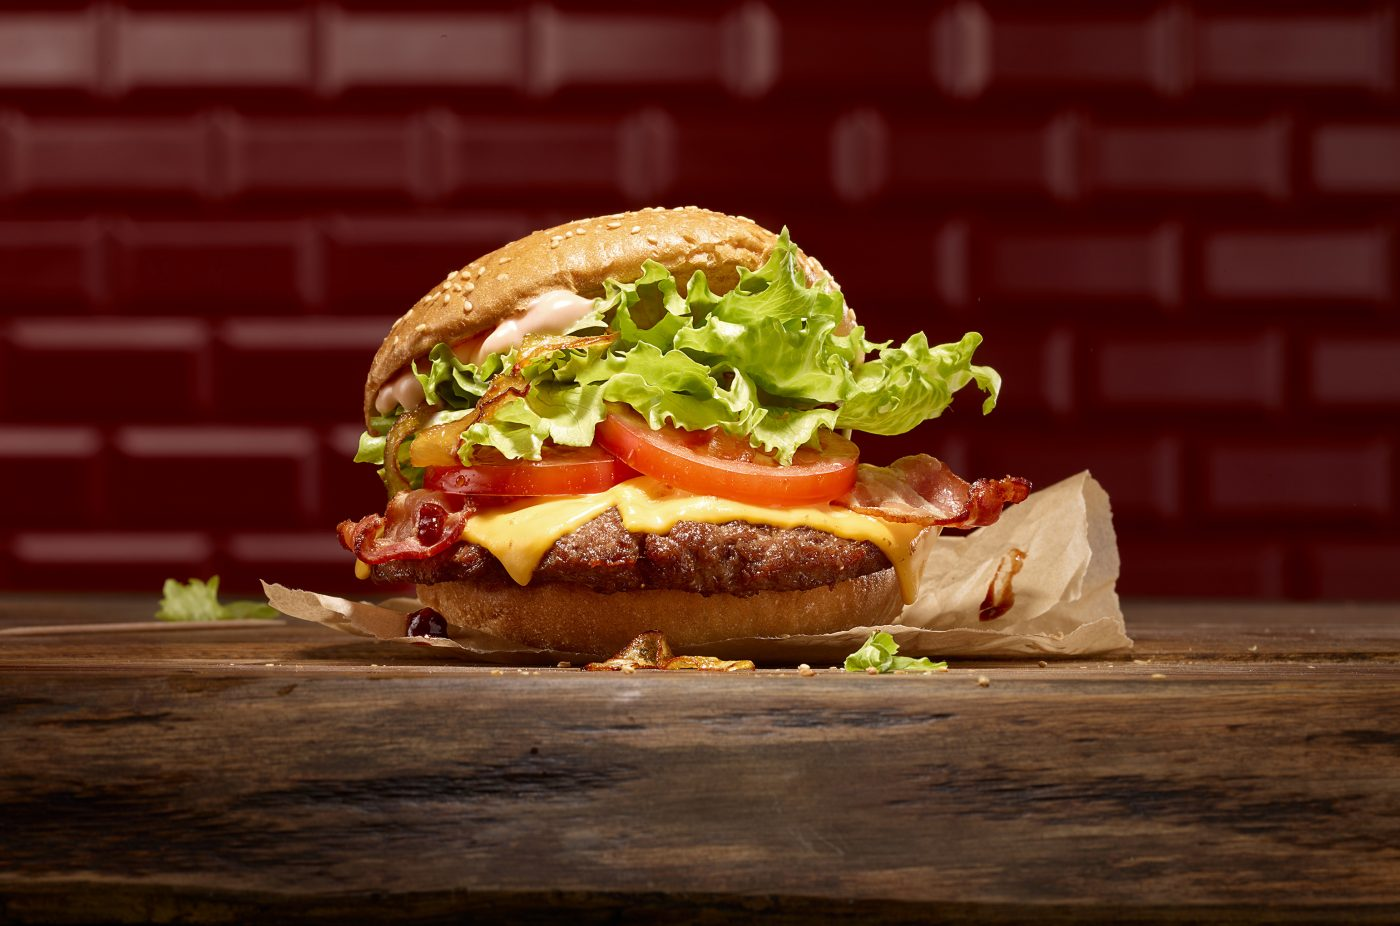 a yummy burger with cheese tomatos salad aud sauce is on a old nice wood table. dark red tiles are in the background